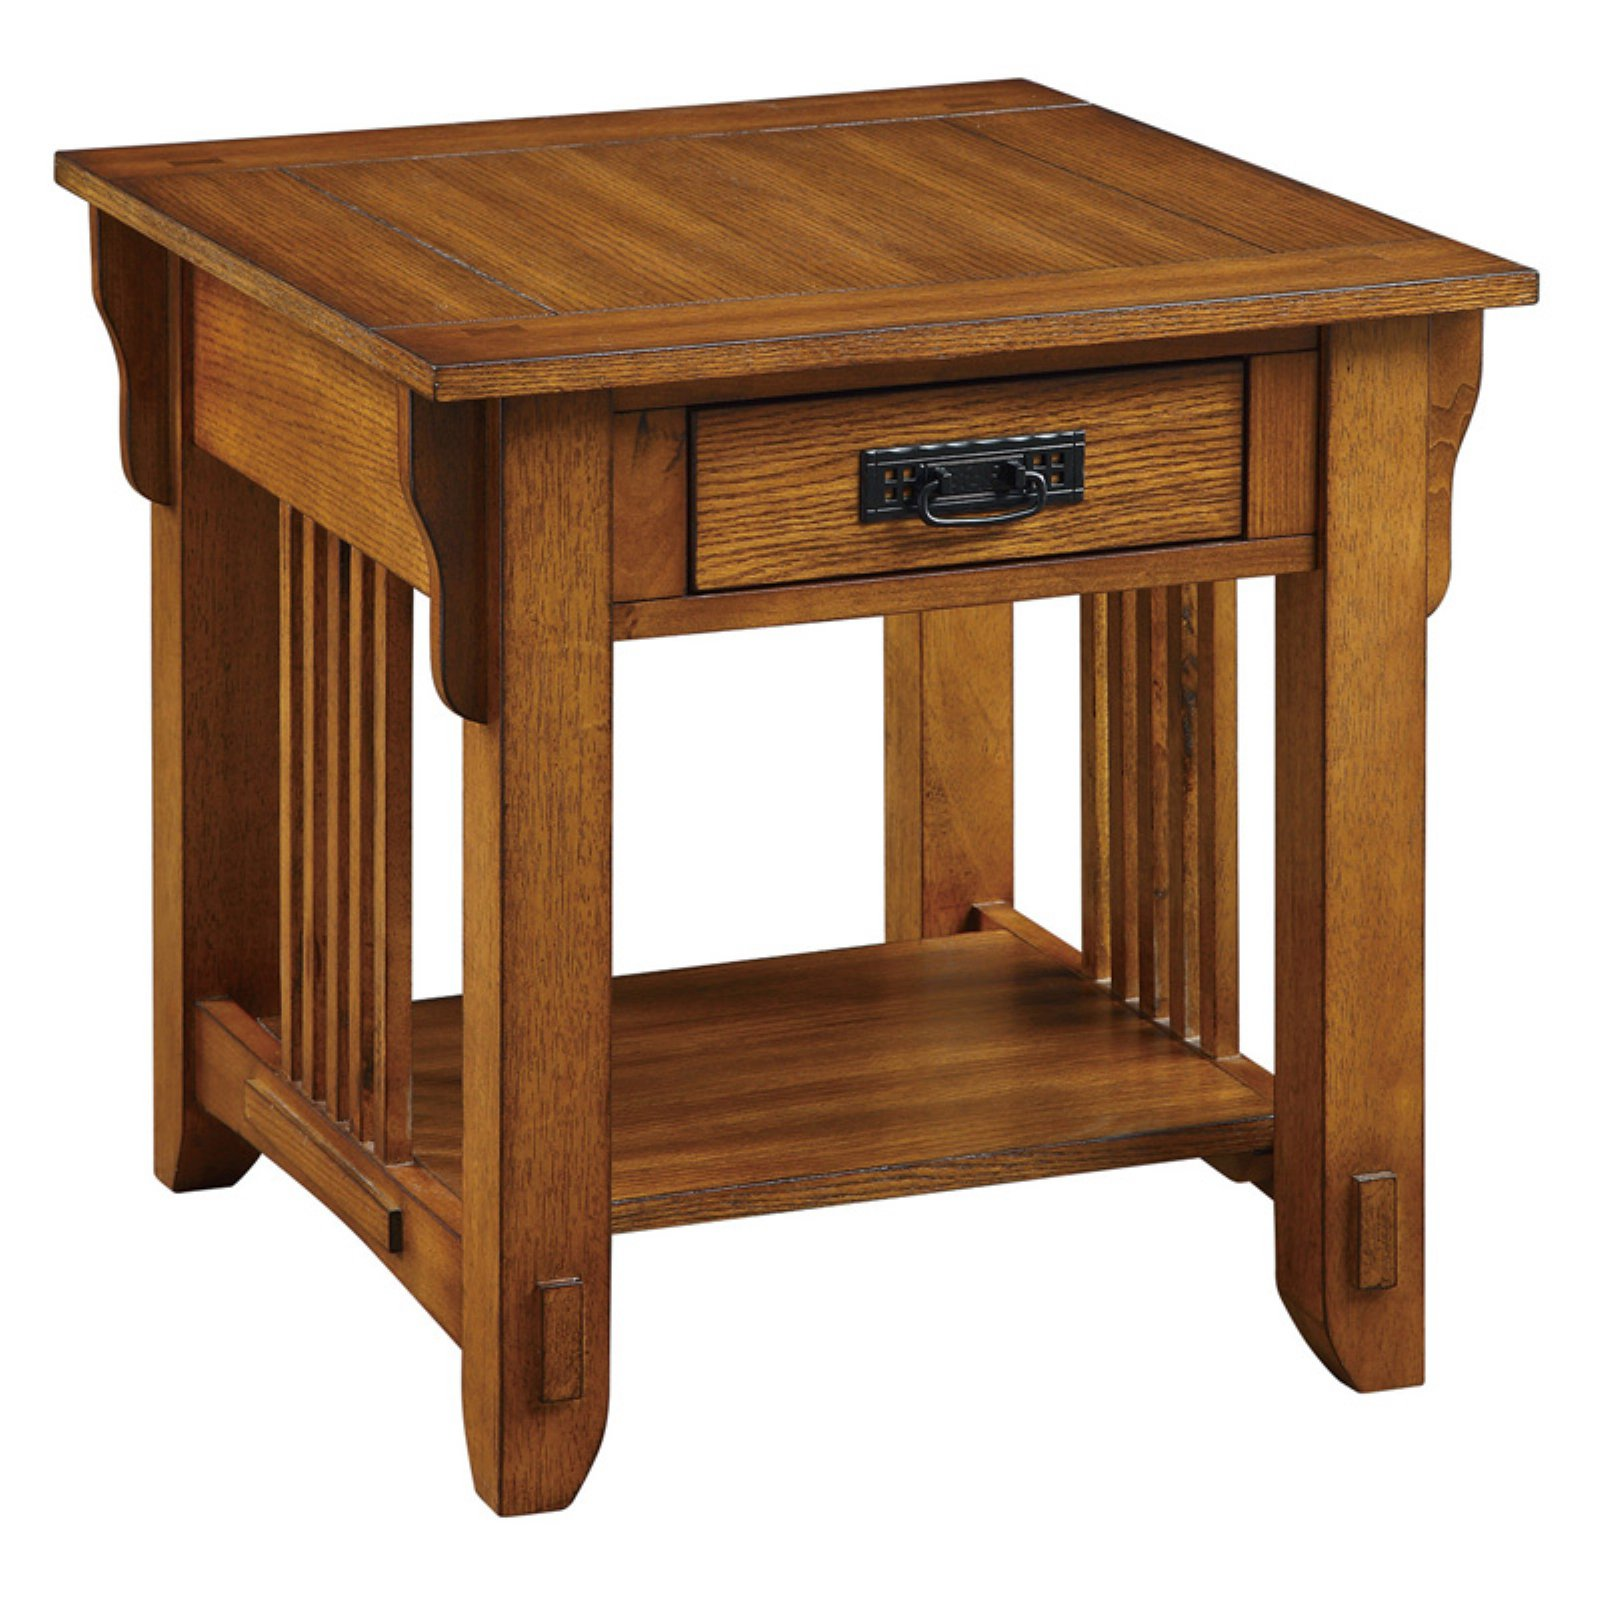 Coaster Company Traditional Mission Style End Table, Warm Brown